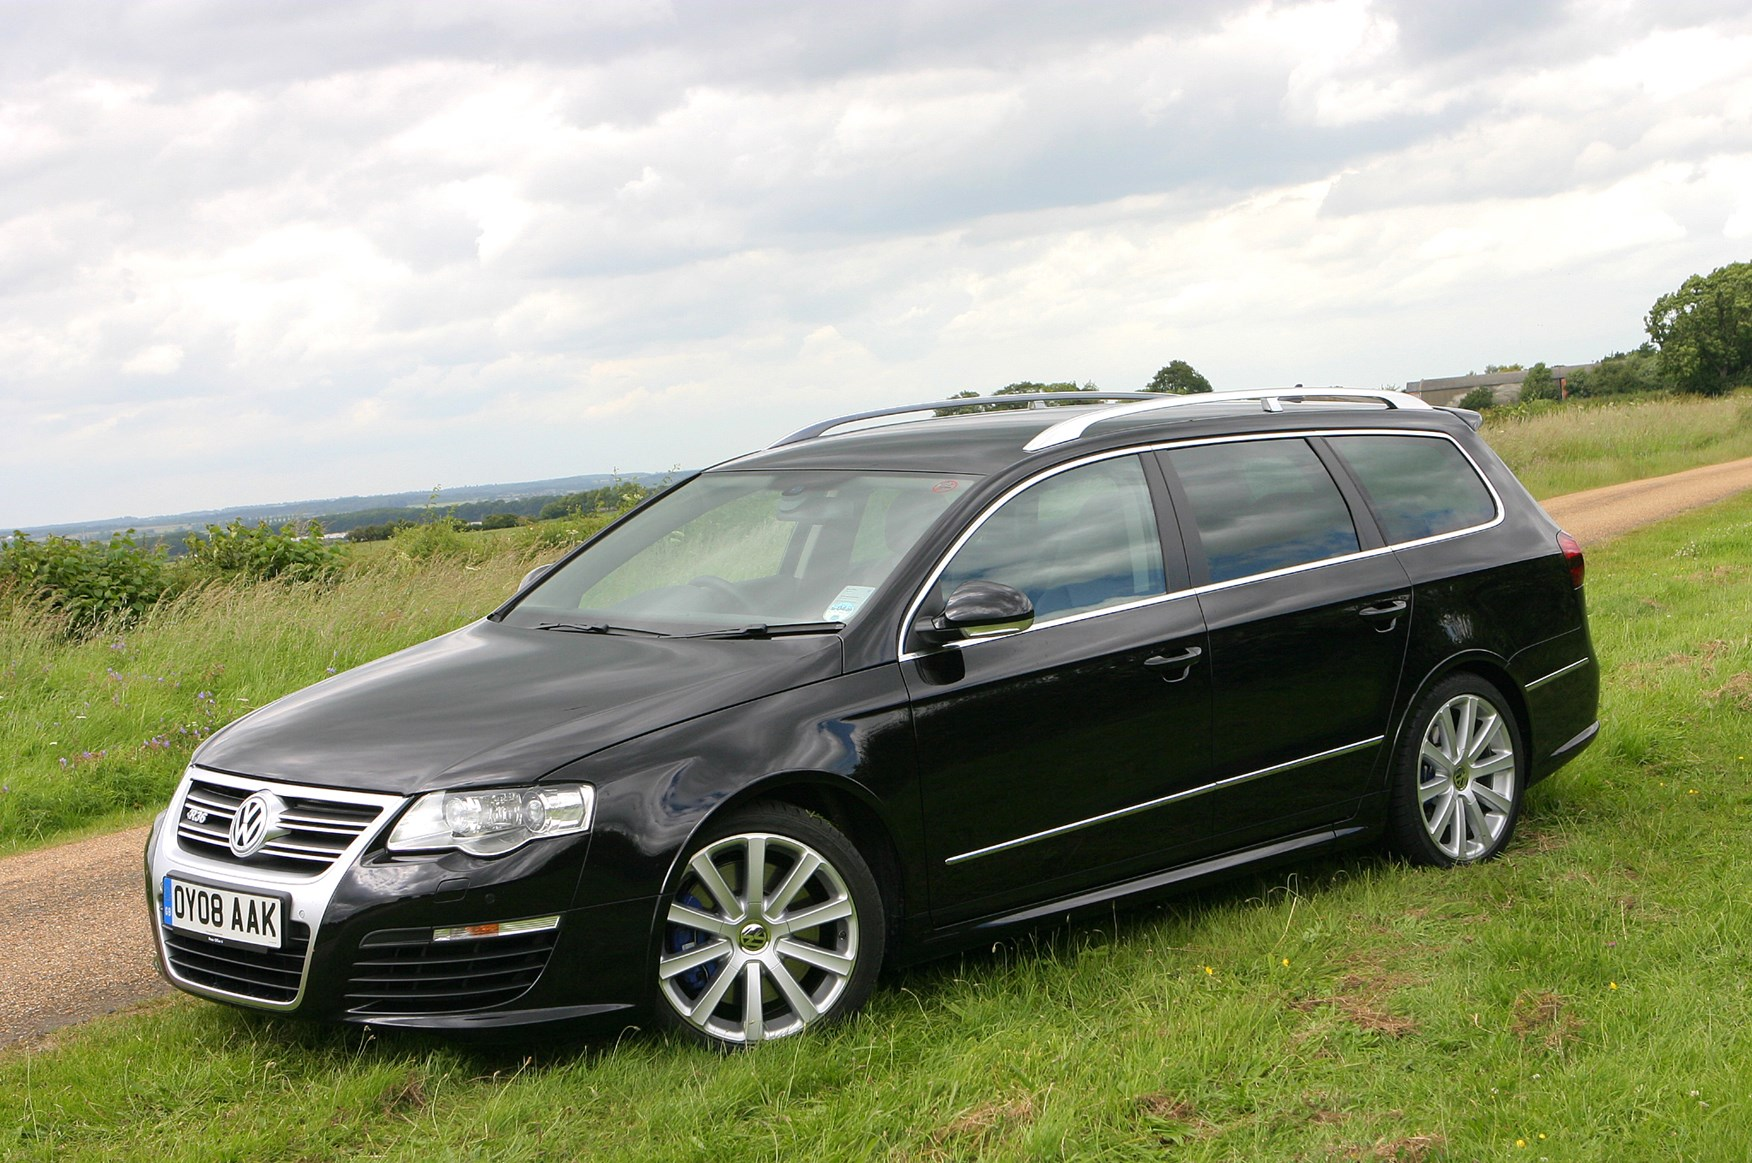 volkswagen passat r36 2008 2010 photos parkers. Black Bedroom Furniture Sets. Home Design Ideas